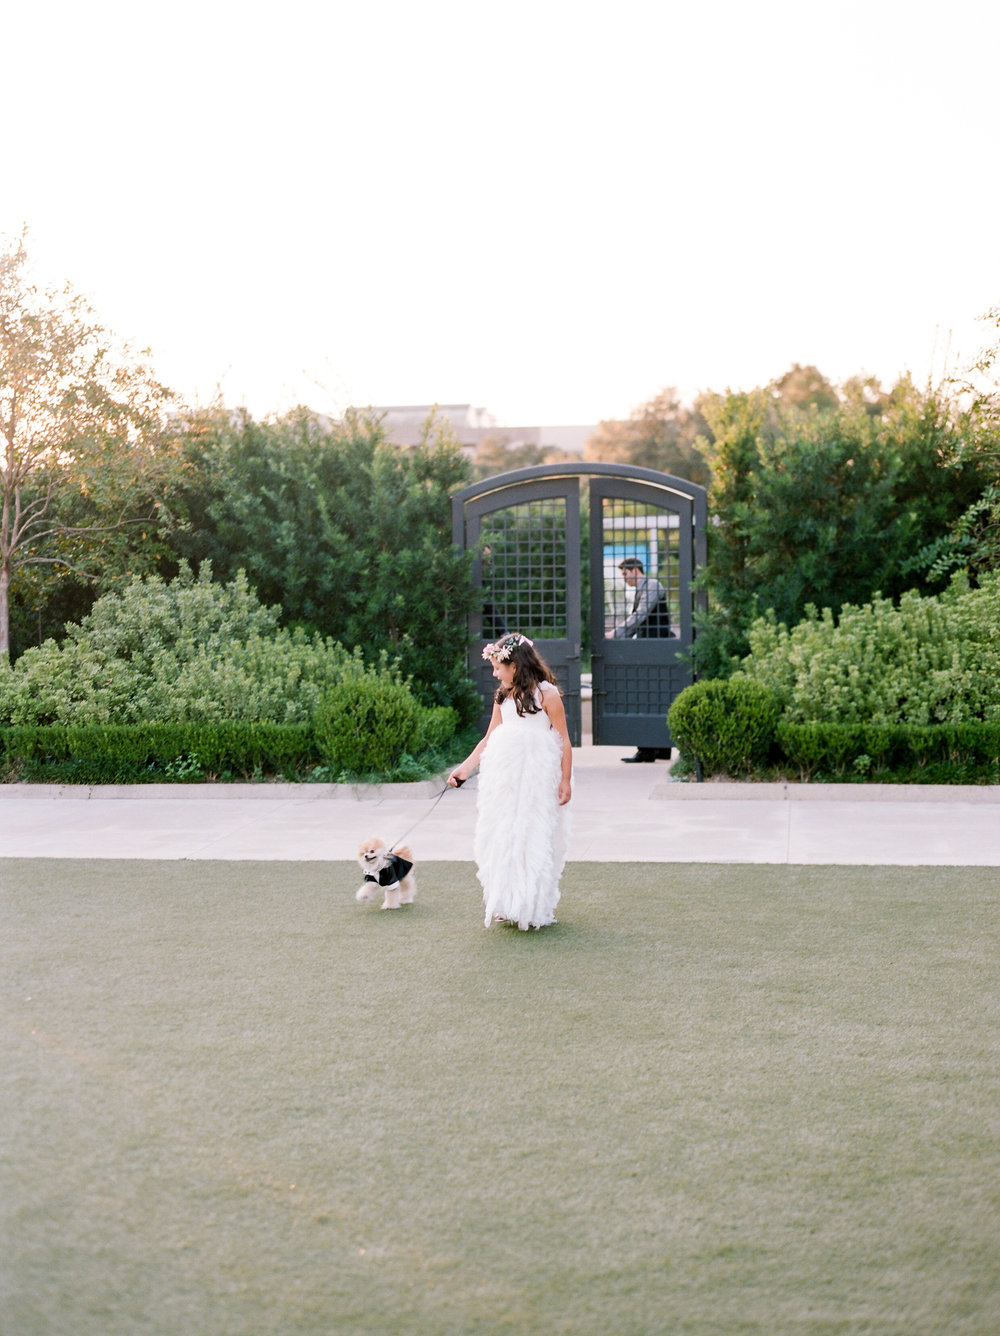 Martha-Stewart-Wedding-Dana-Fernandez-Photography-Josh-Texas-Film-Houston-Wedding-Fine-Art-Photographer-McGovern-Centennial-Gardens-Top-Best-115.jpg